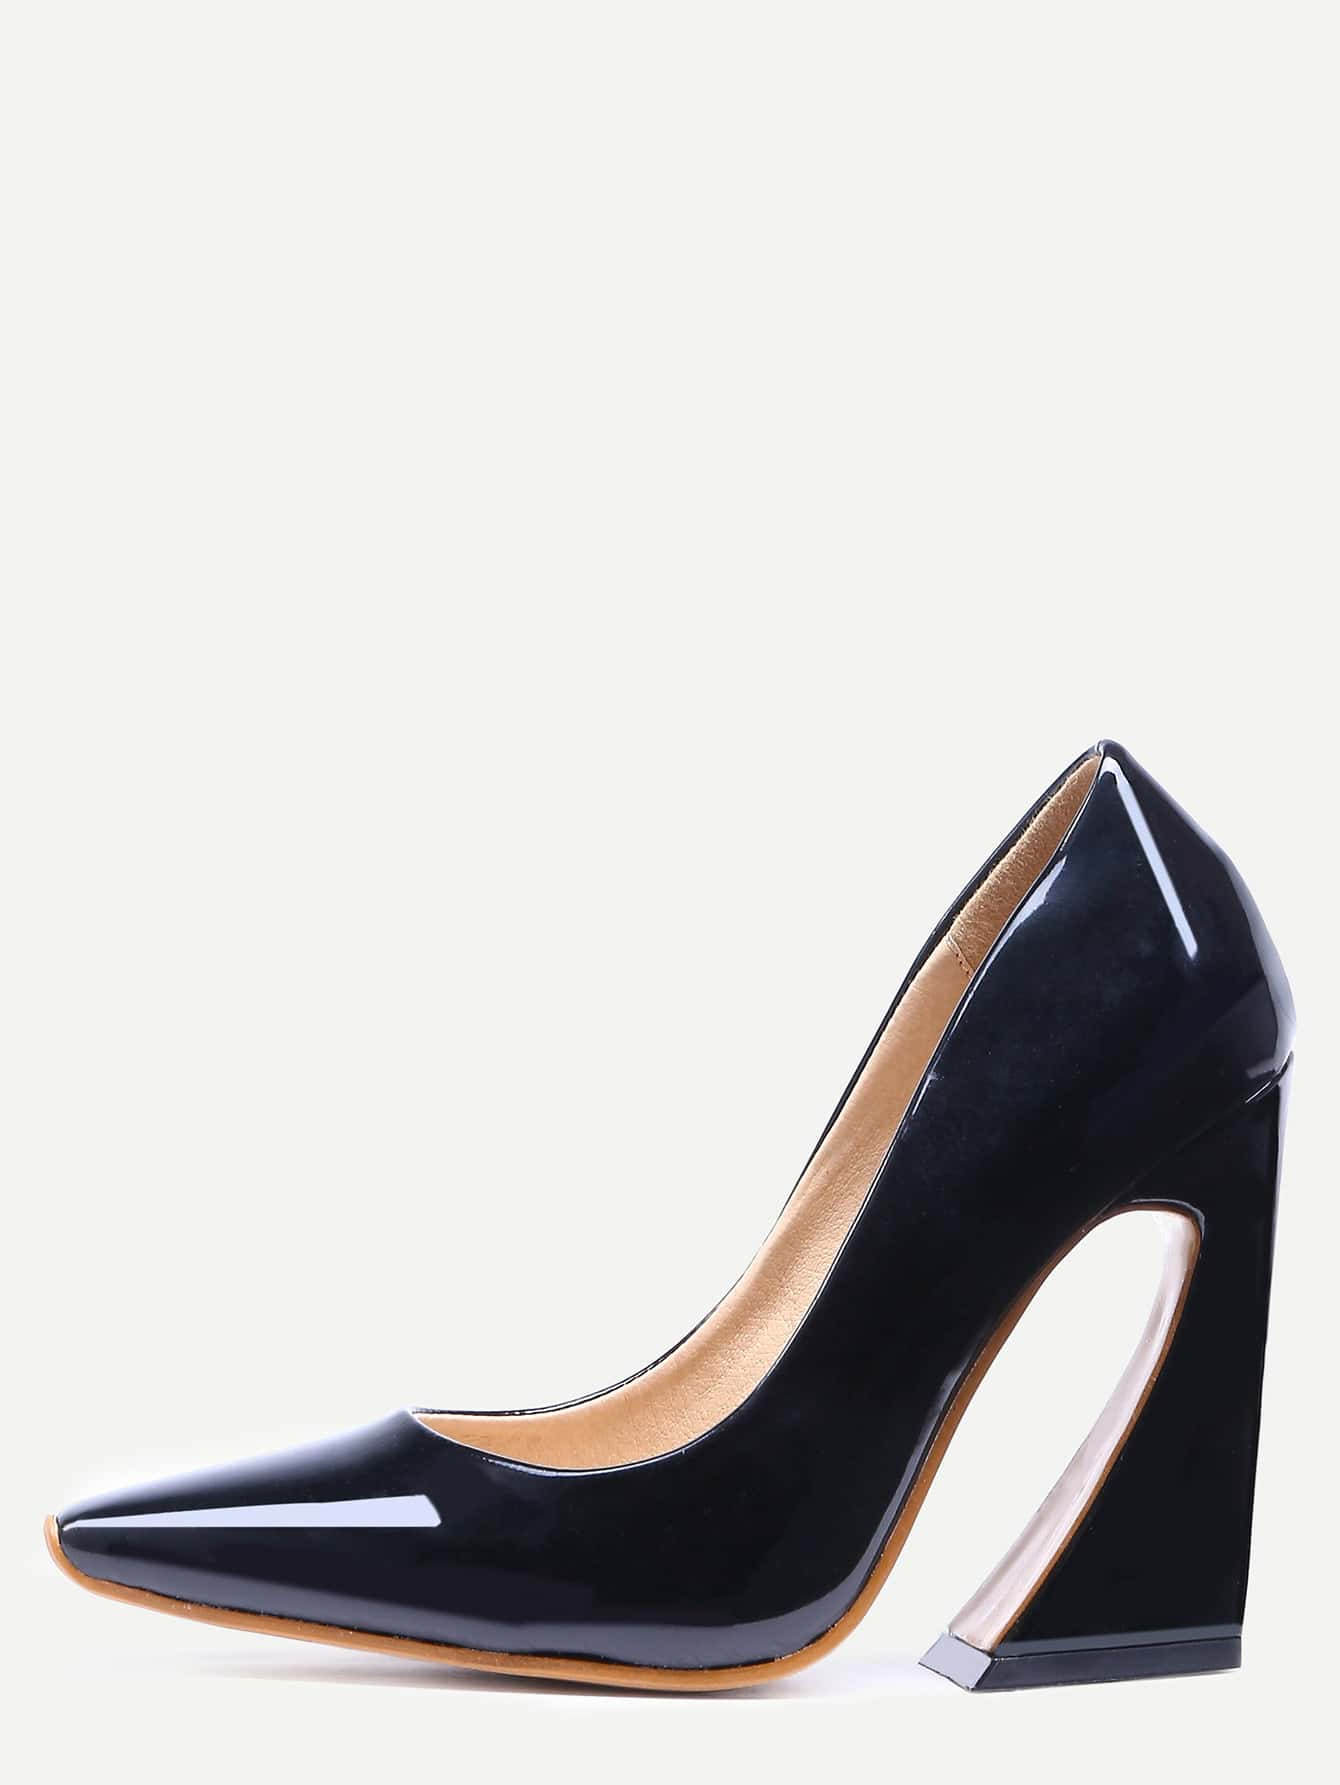 Black Pointed Toe Chunky Pumps shoes160712801